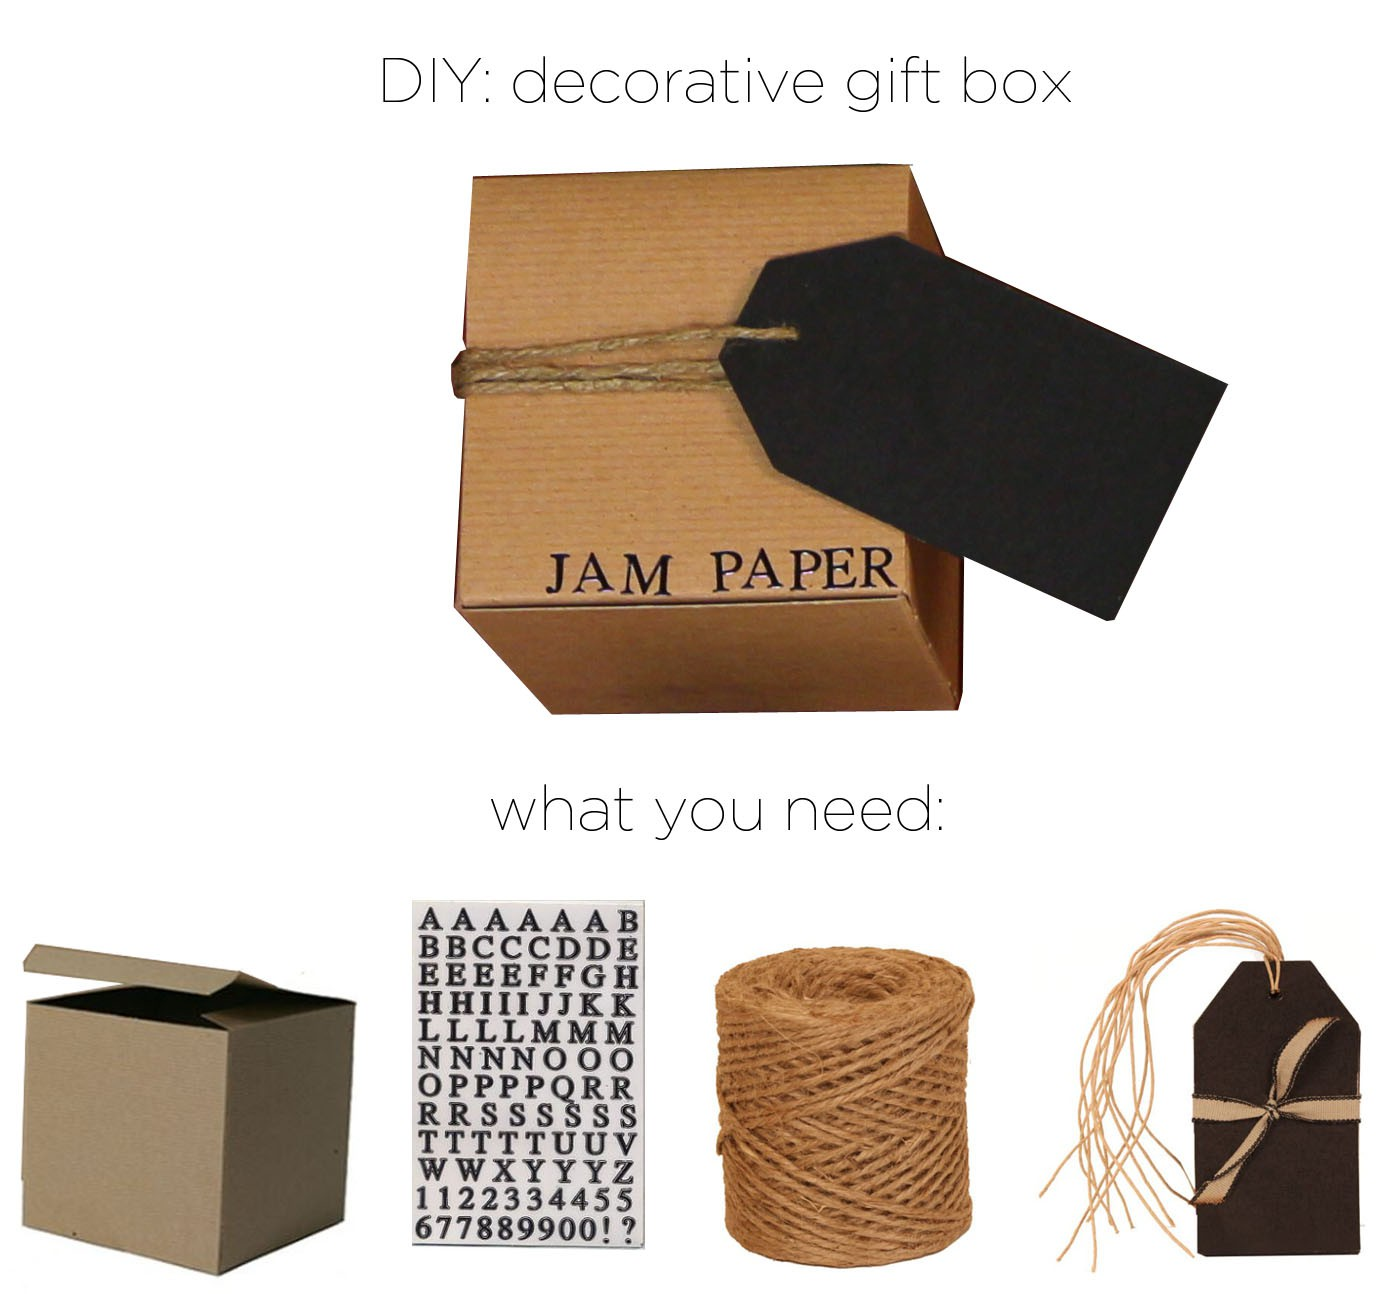 diy decorative gift box. Black Bedroom Furniture Sets. Home Design Ideas